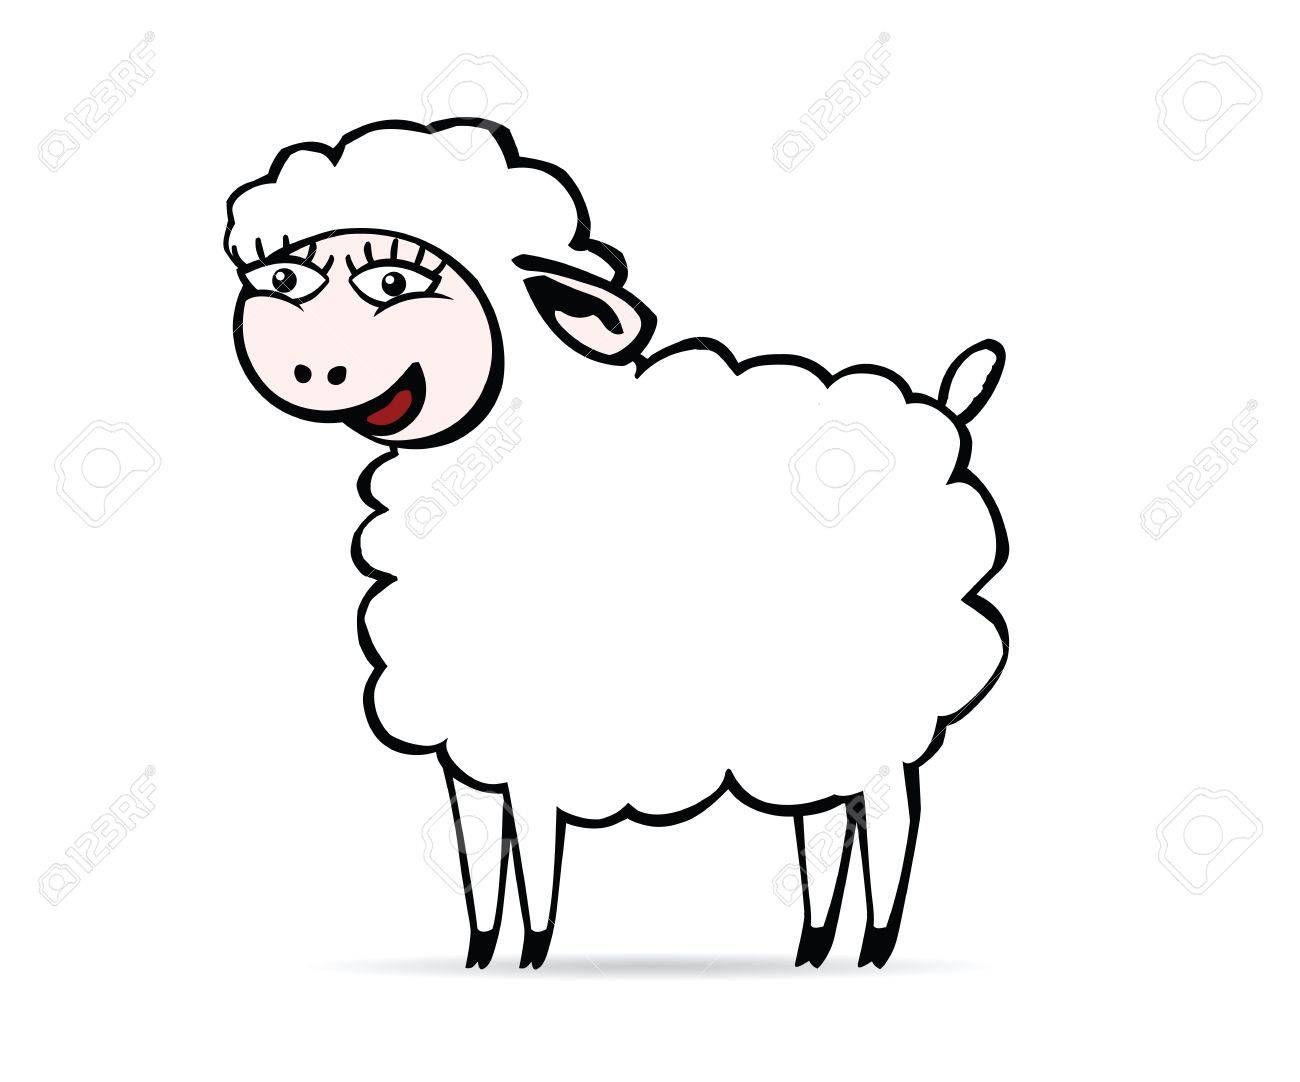 Sheep Eyes Drawing There is a White Smiling Sheep